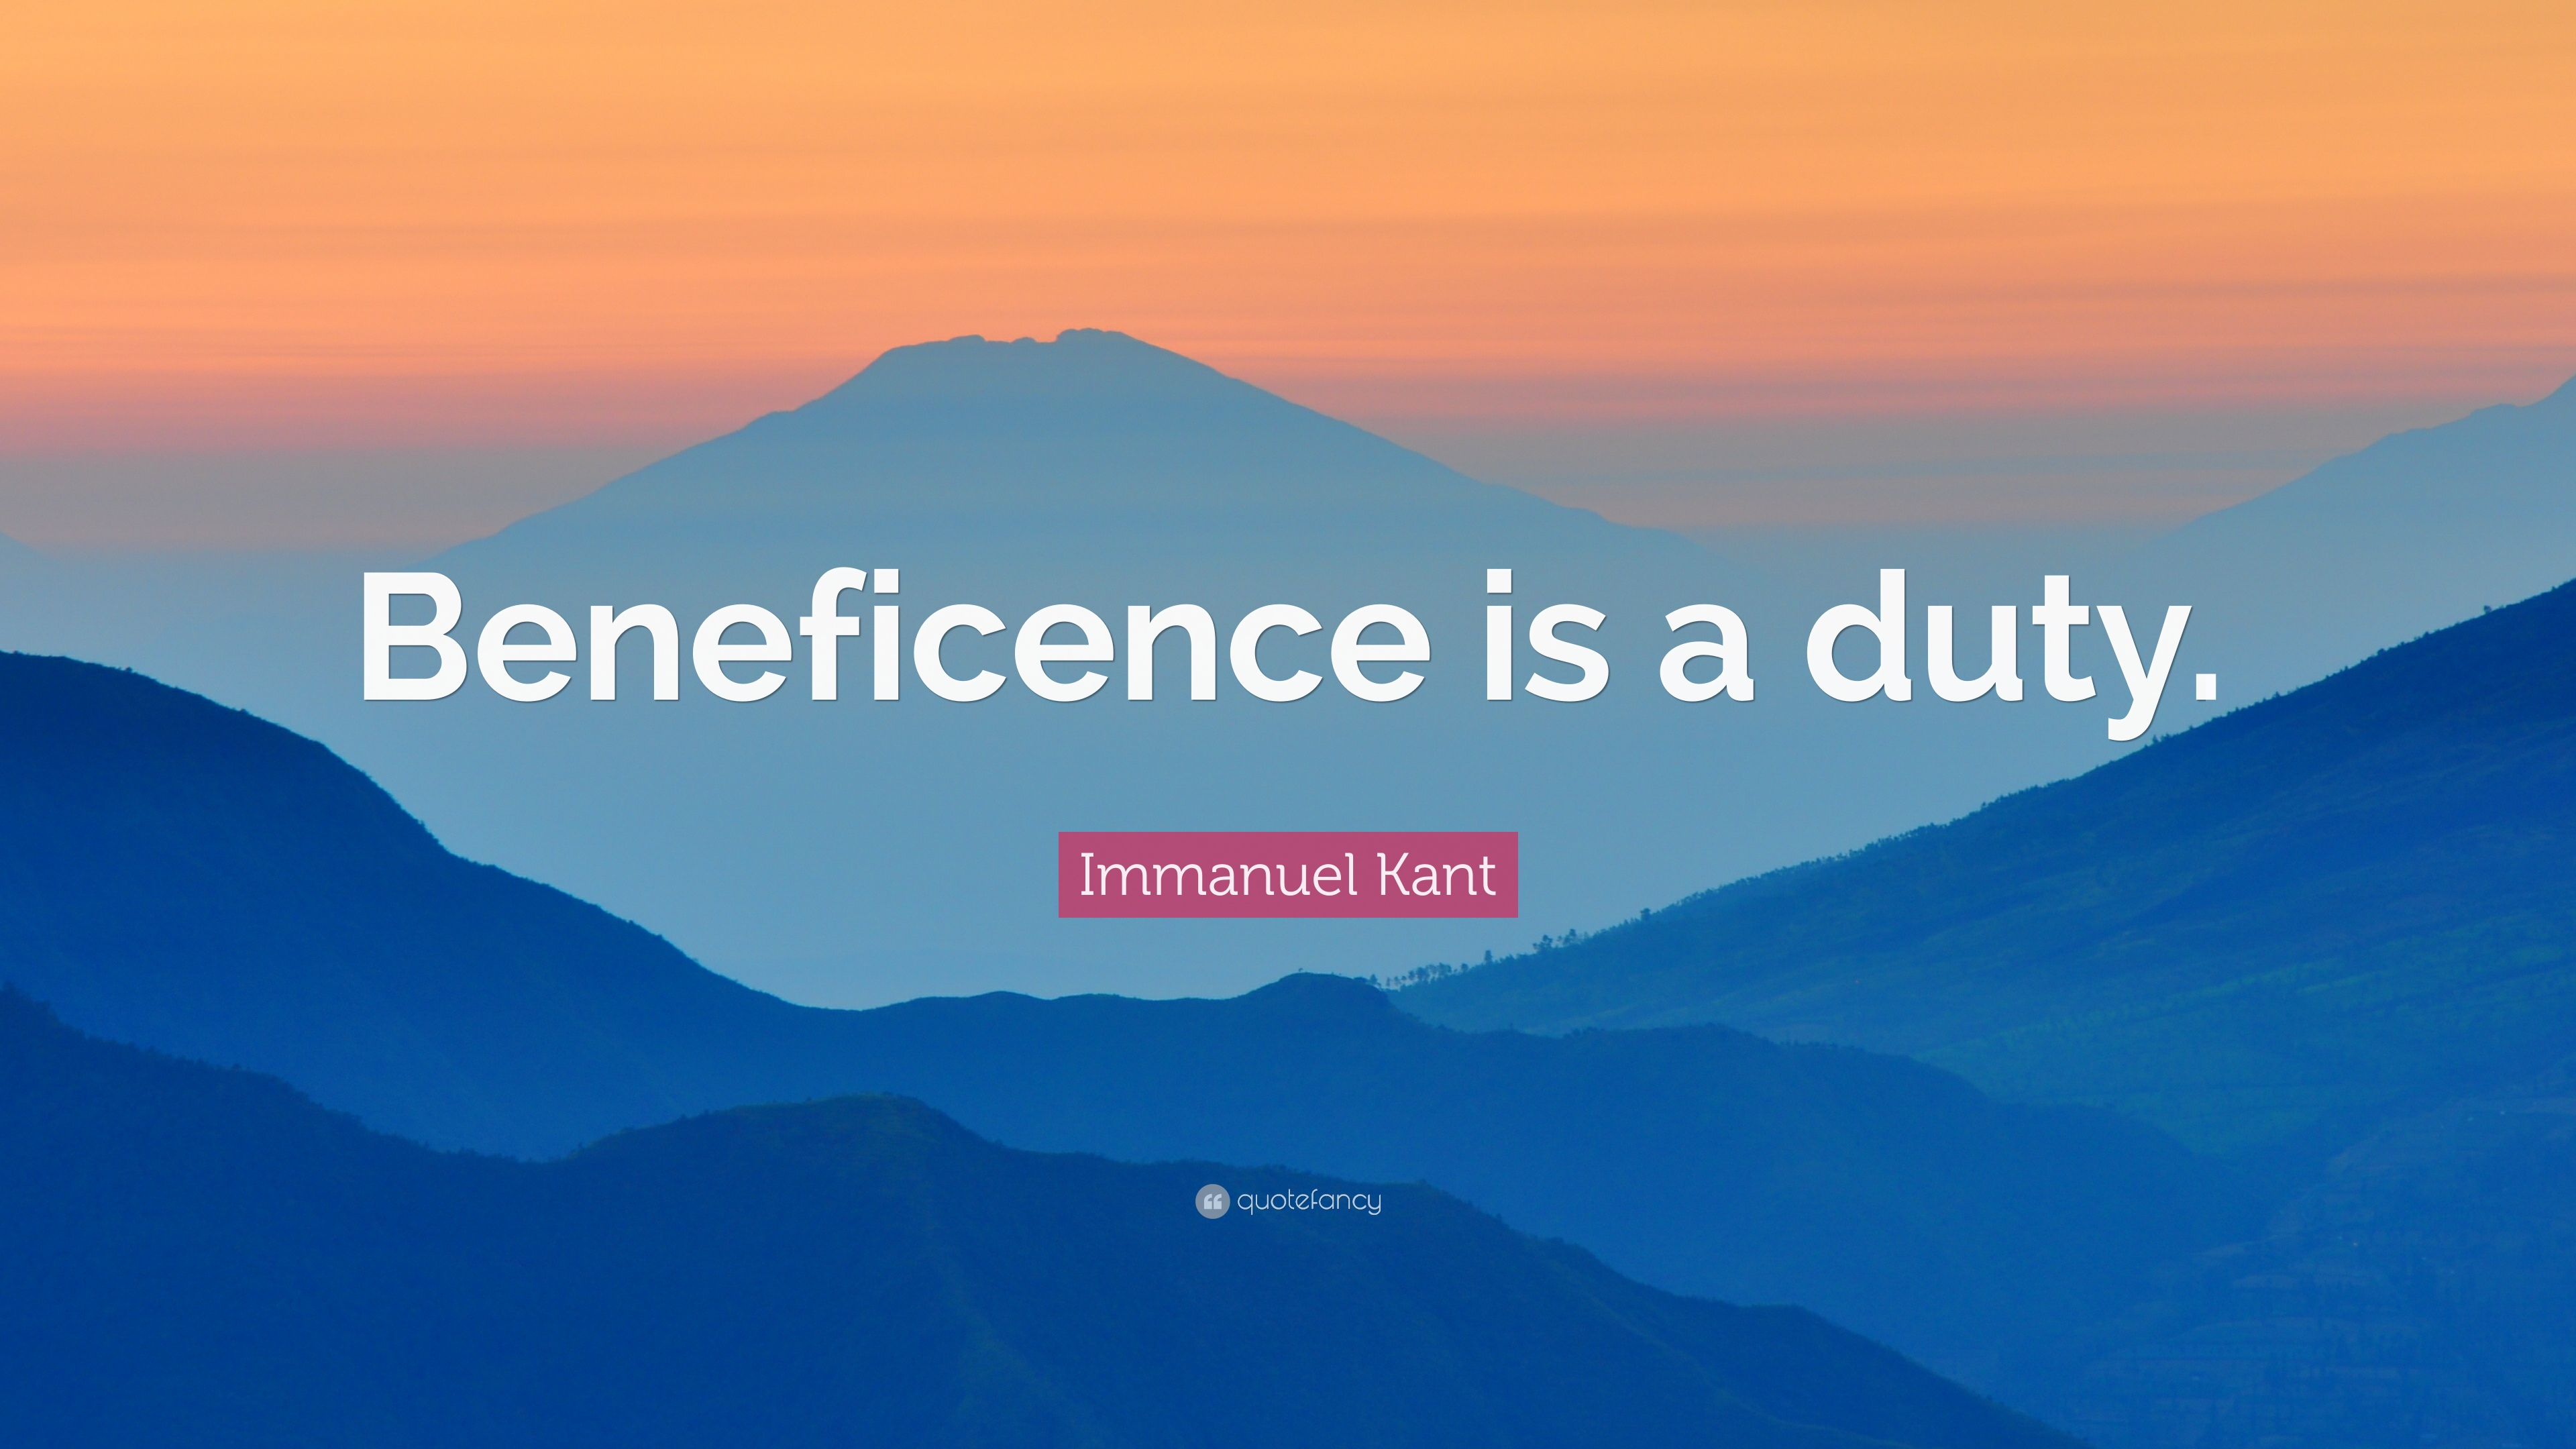 Immanuel Kant Quote Wallpaper Immanuel Kant Quote Beneficence Is A Duty 12